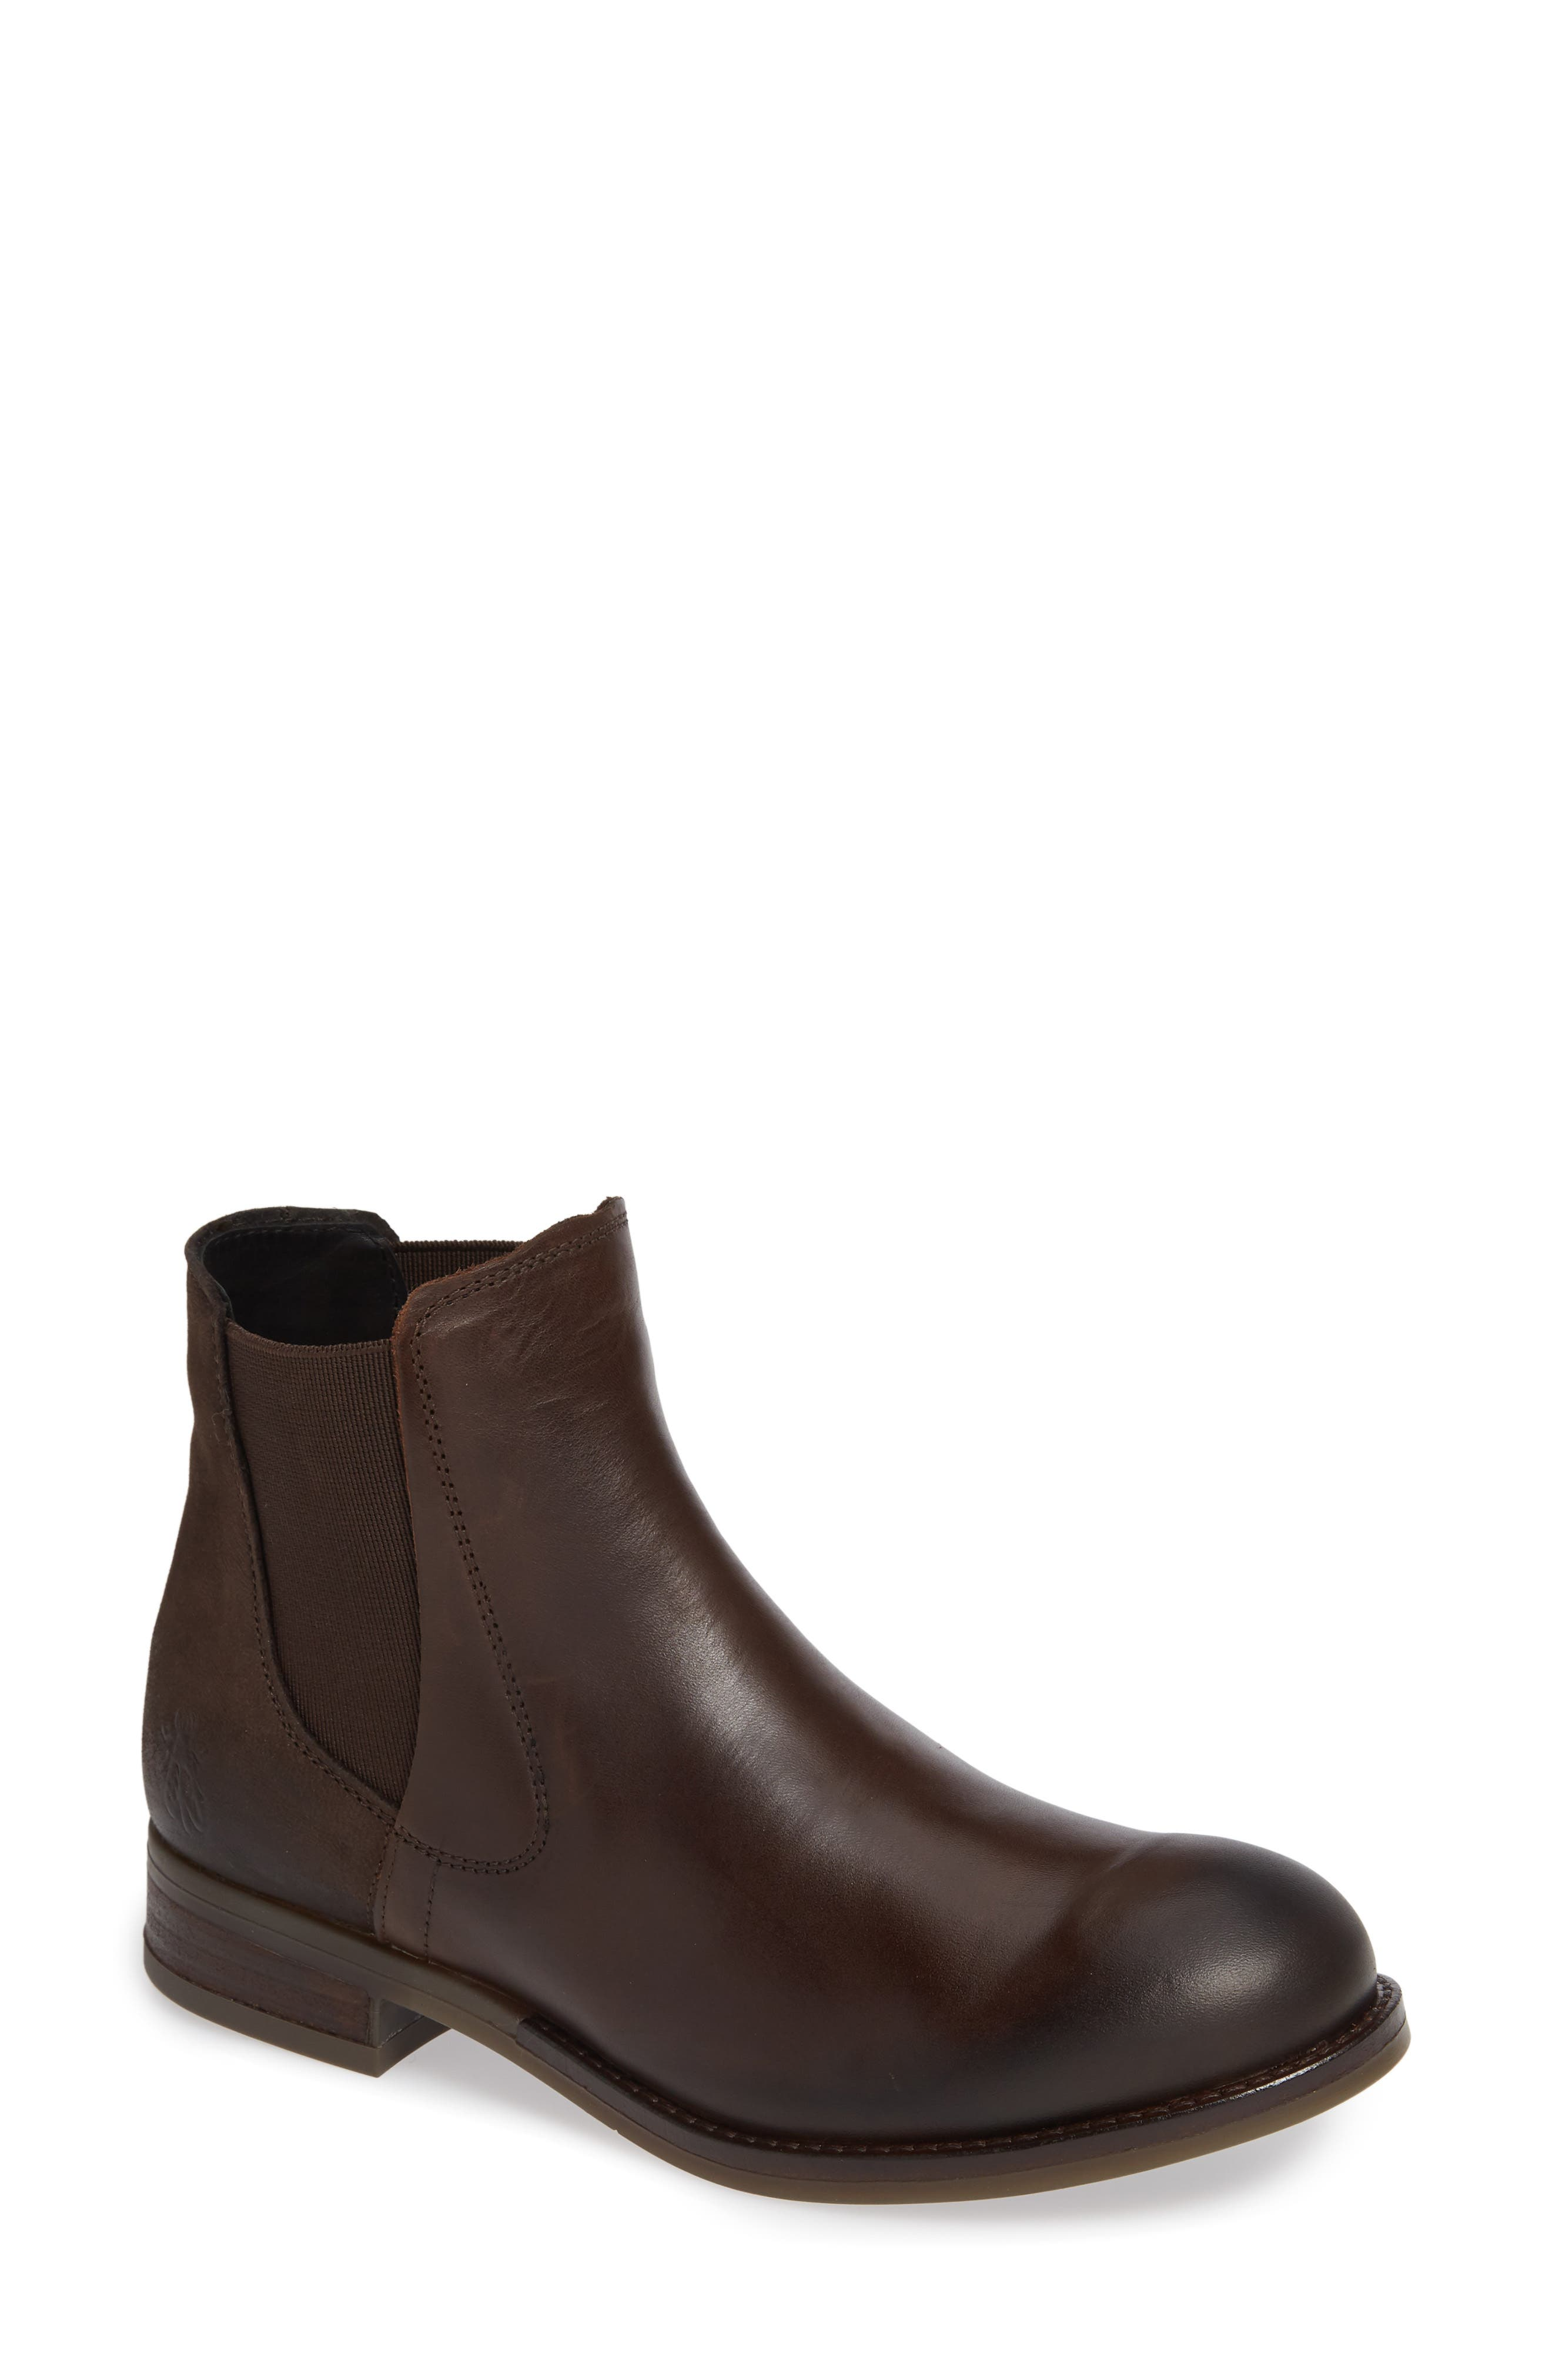 Fly London Alls Chelsea Bootie, Brown